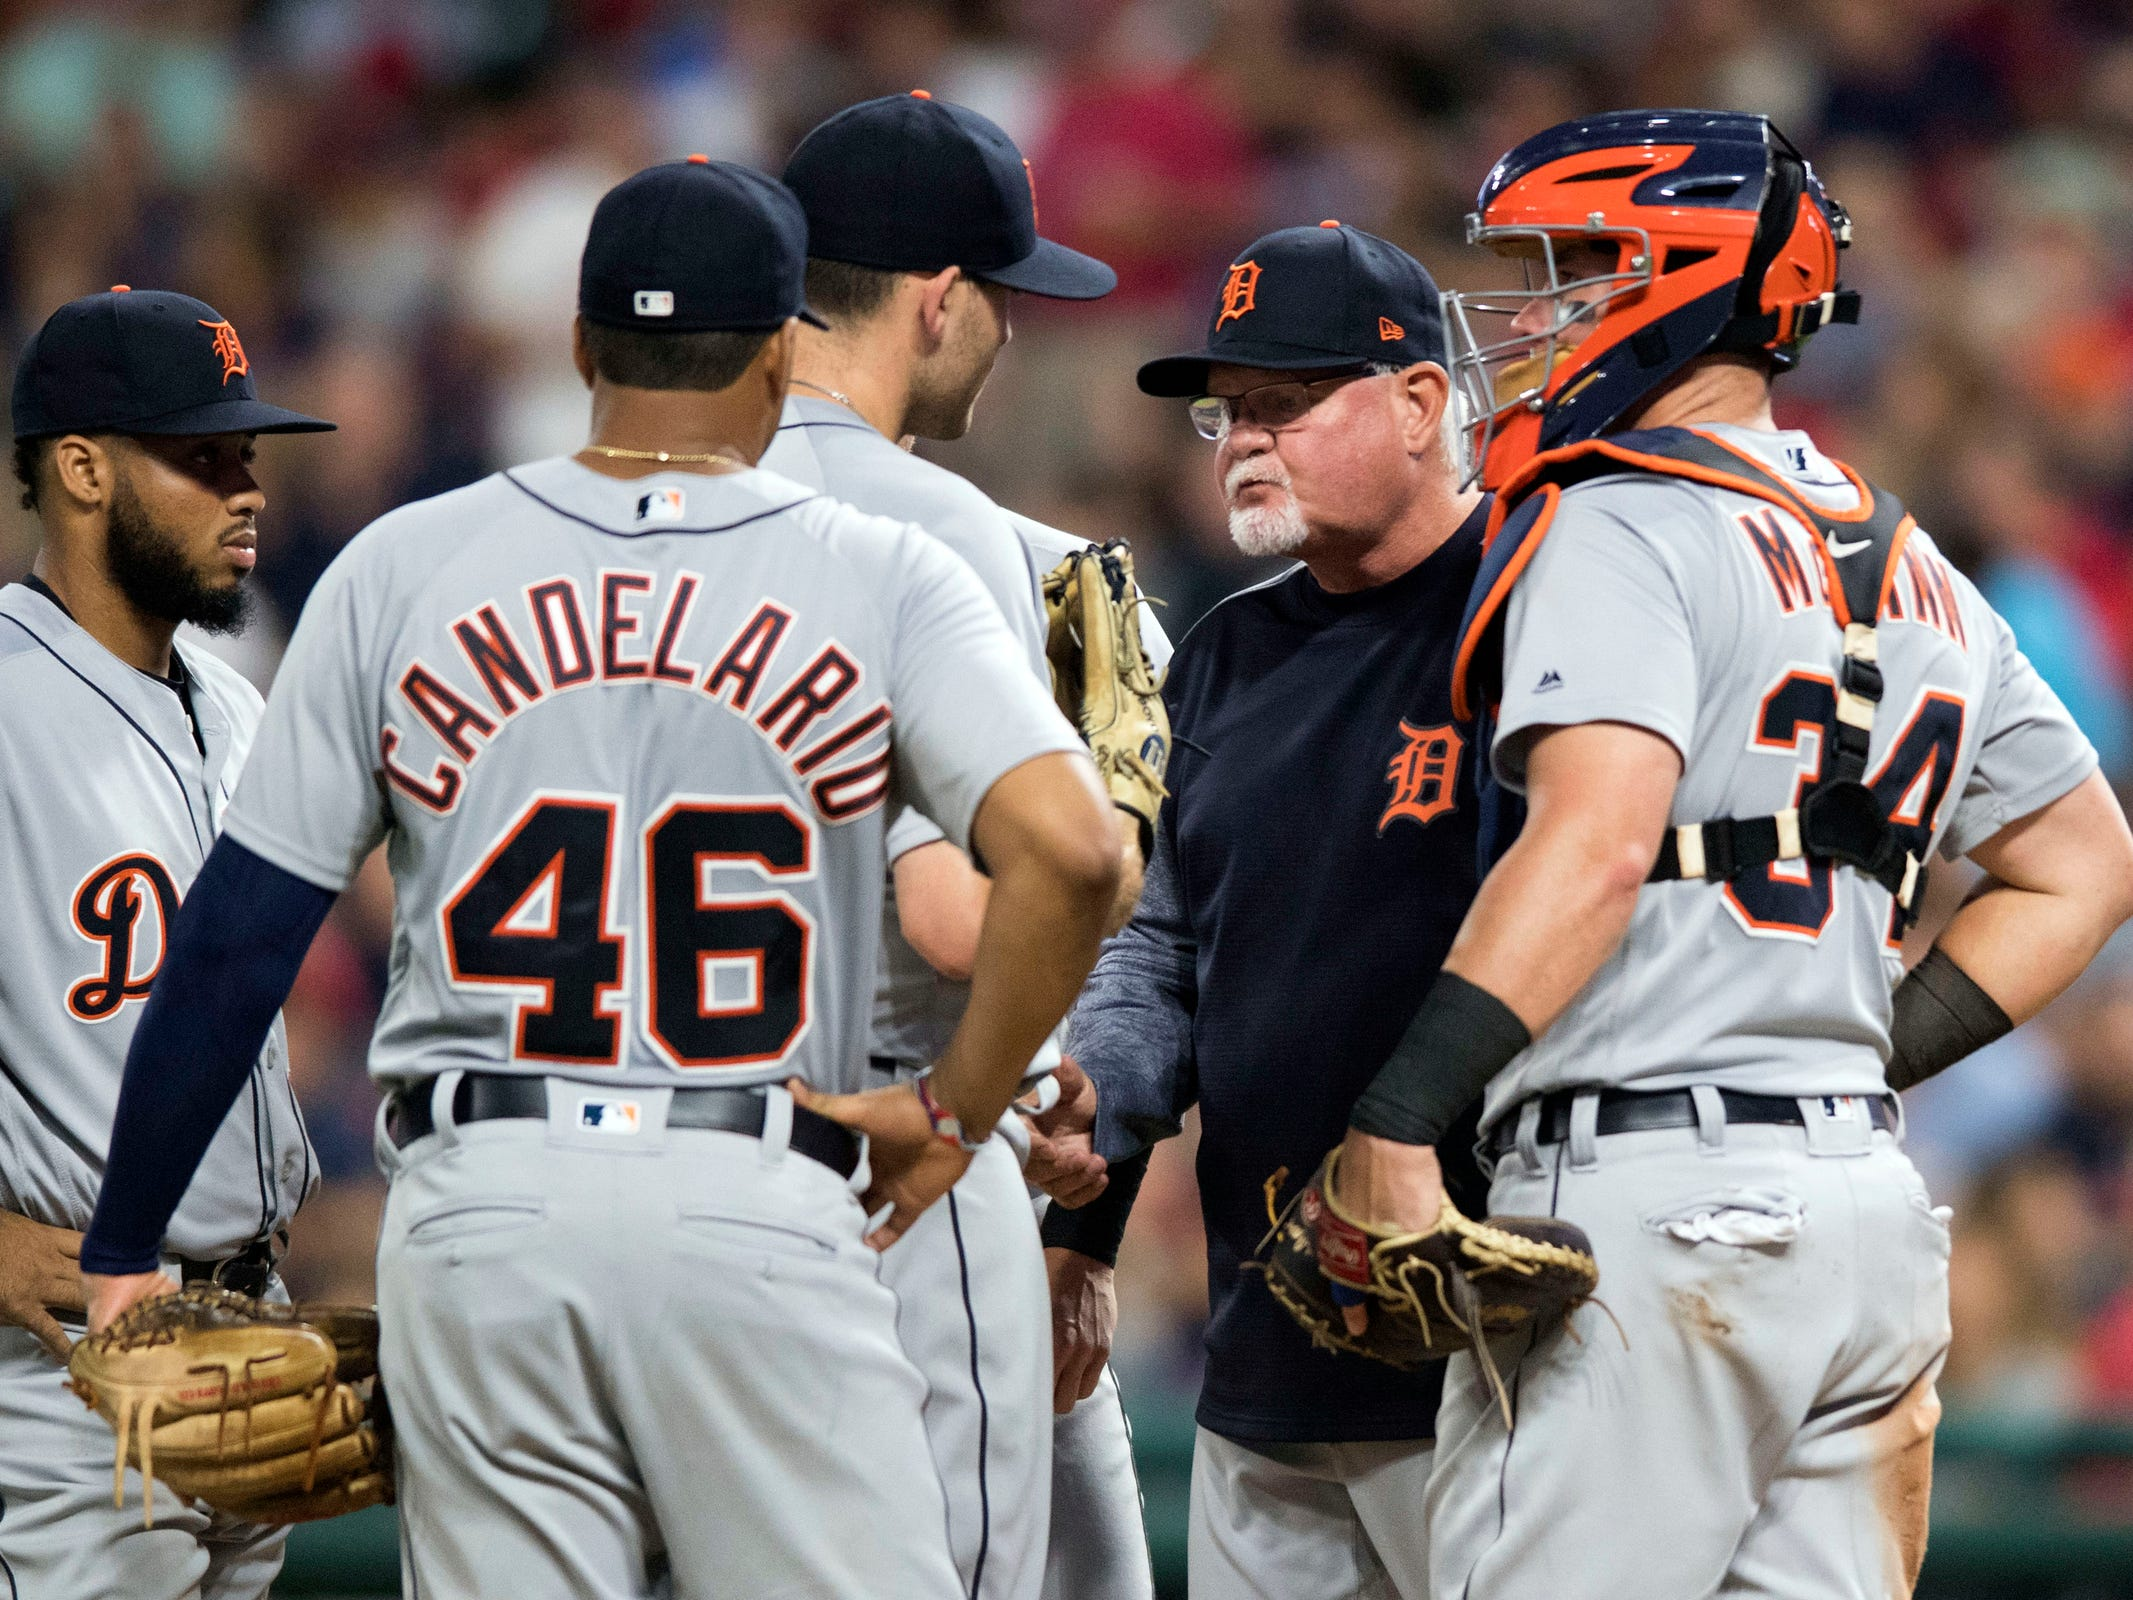 Detroit Tigers manager Ron Gardenhire removes starting pitcher Matthew Boyd from the game as catcher James McCann watches during the sixth inning against the Cleveland Indians at Progressive Field, Friday, Sept. 14, 2018, in Cleveland.